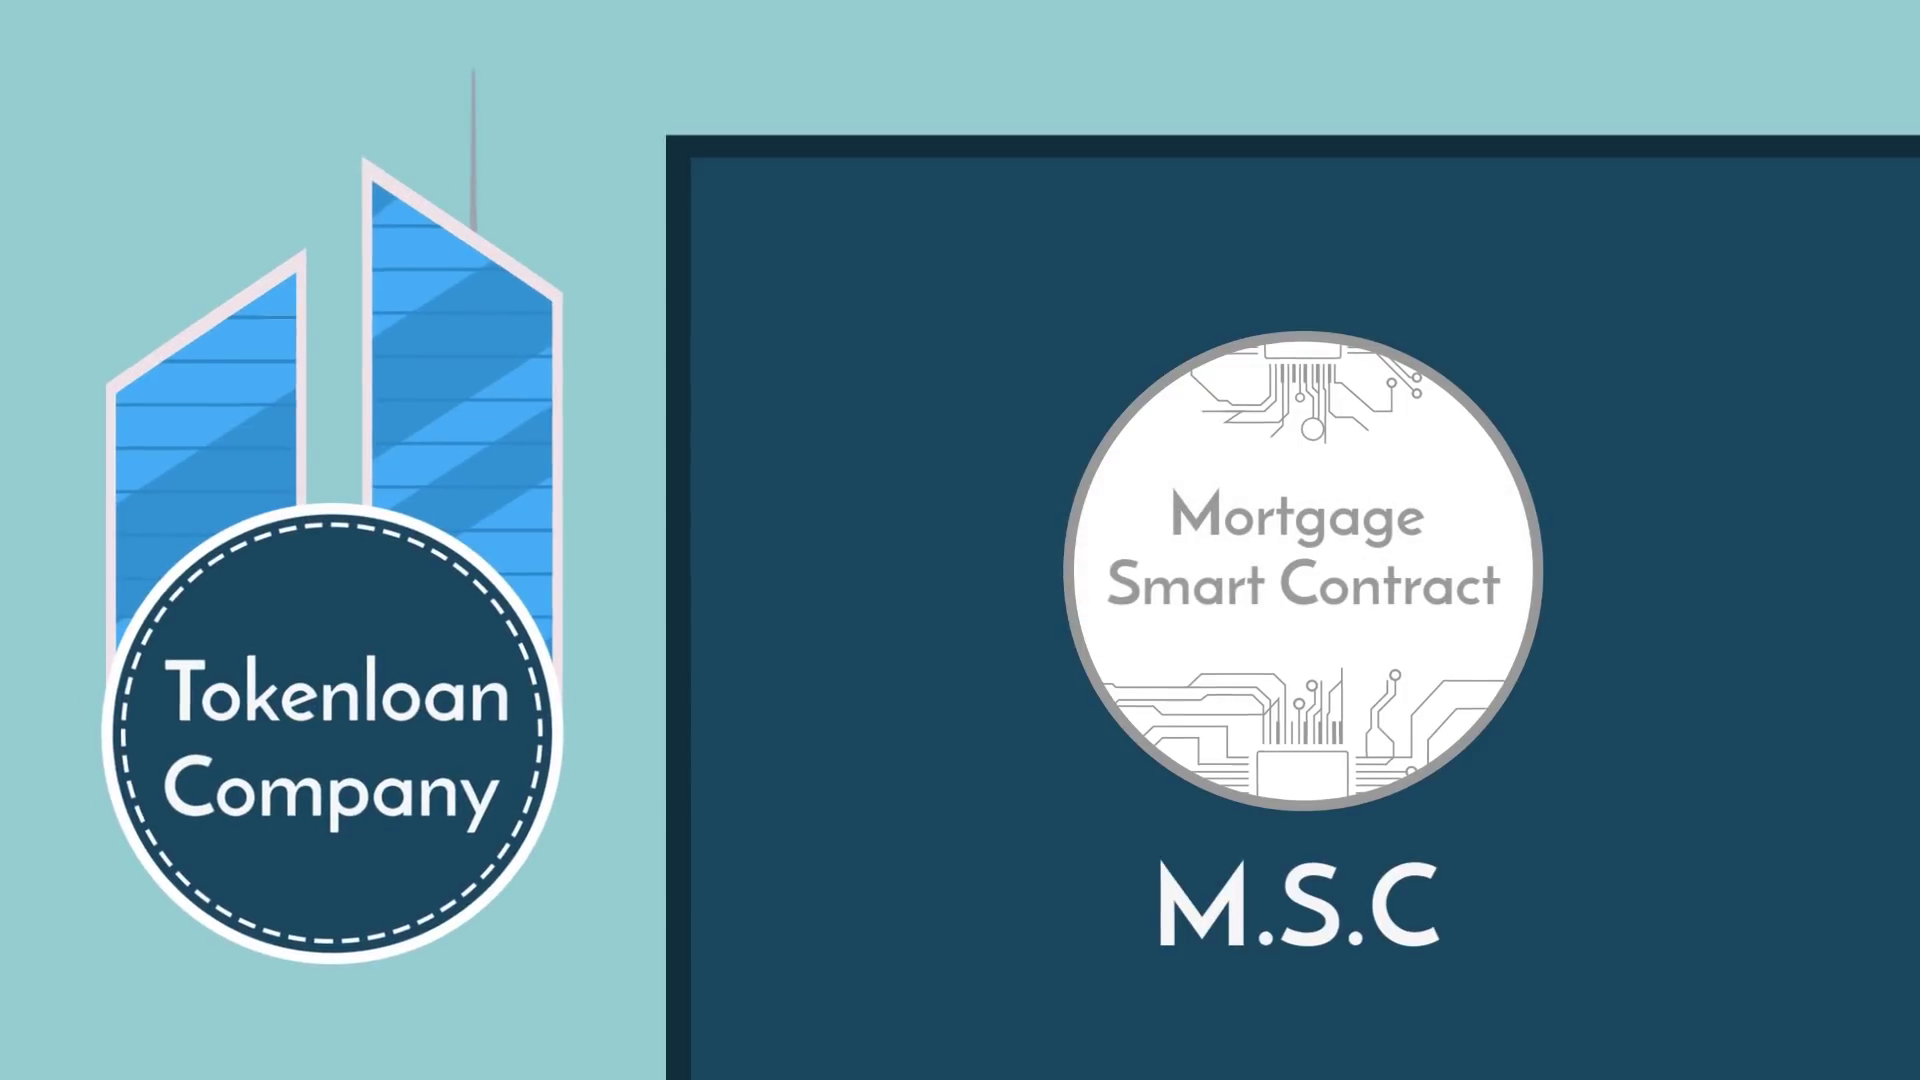 Mortgage smart contract